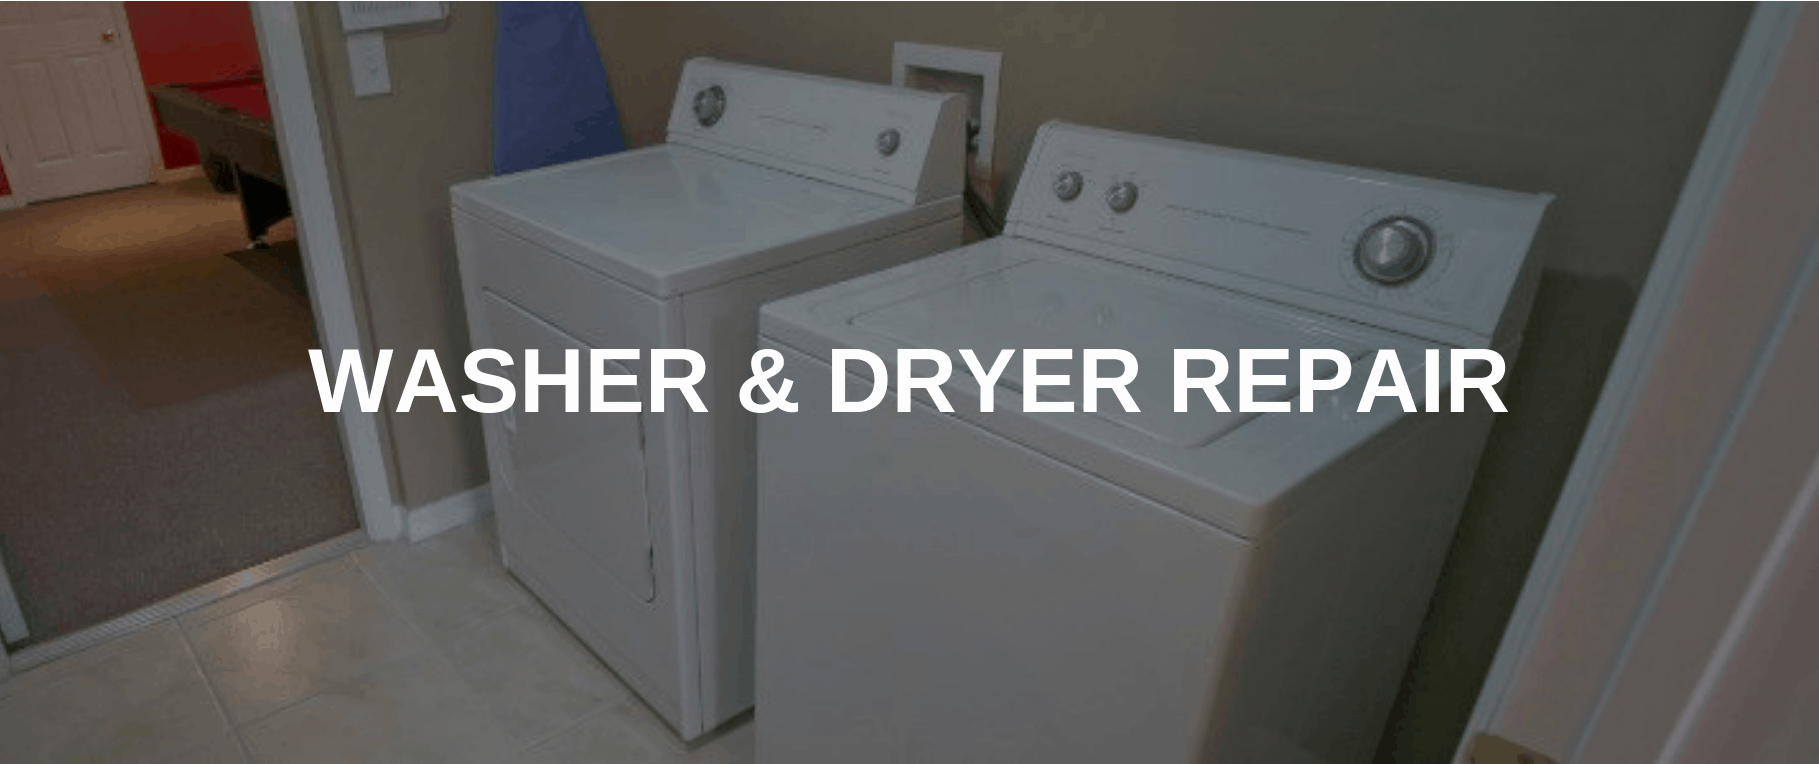 washing machine repair silver spring